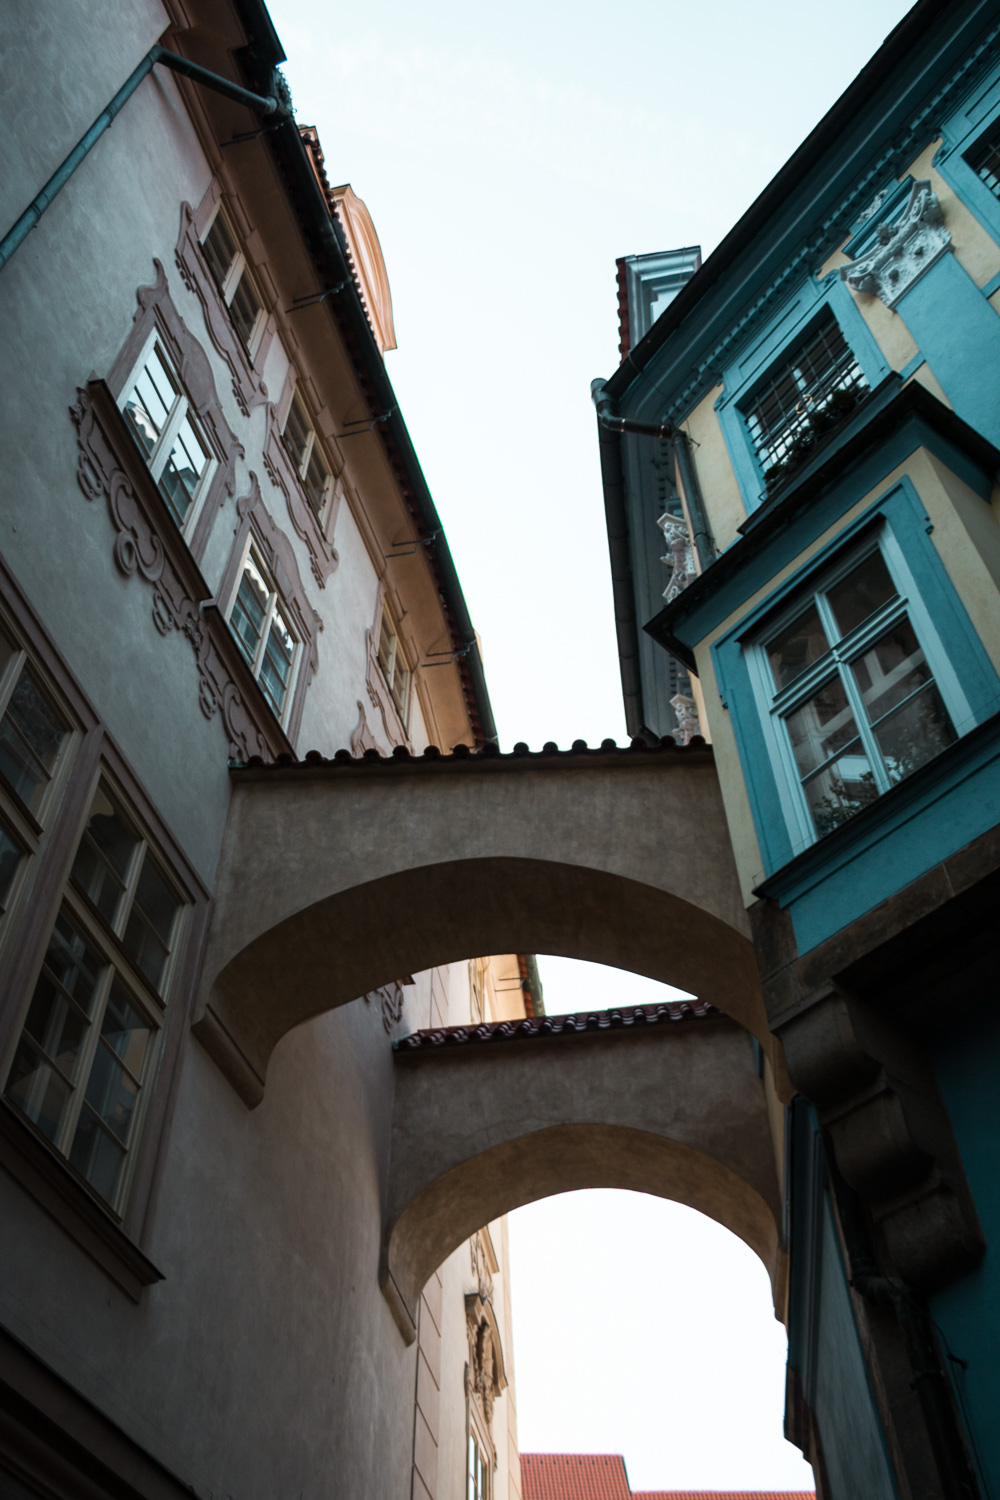 prague | lili weissensteiner